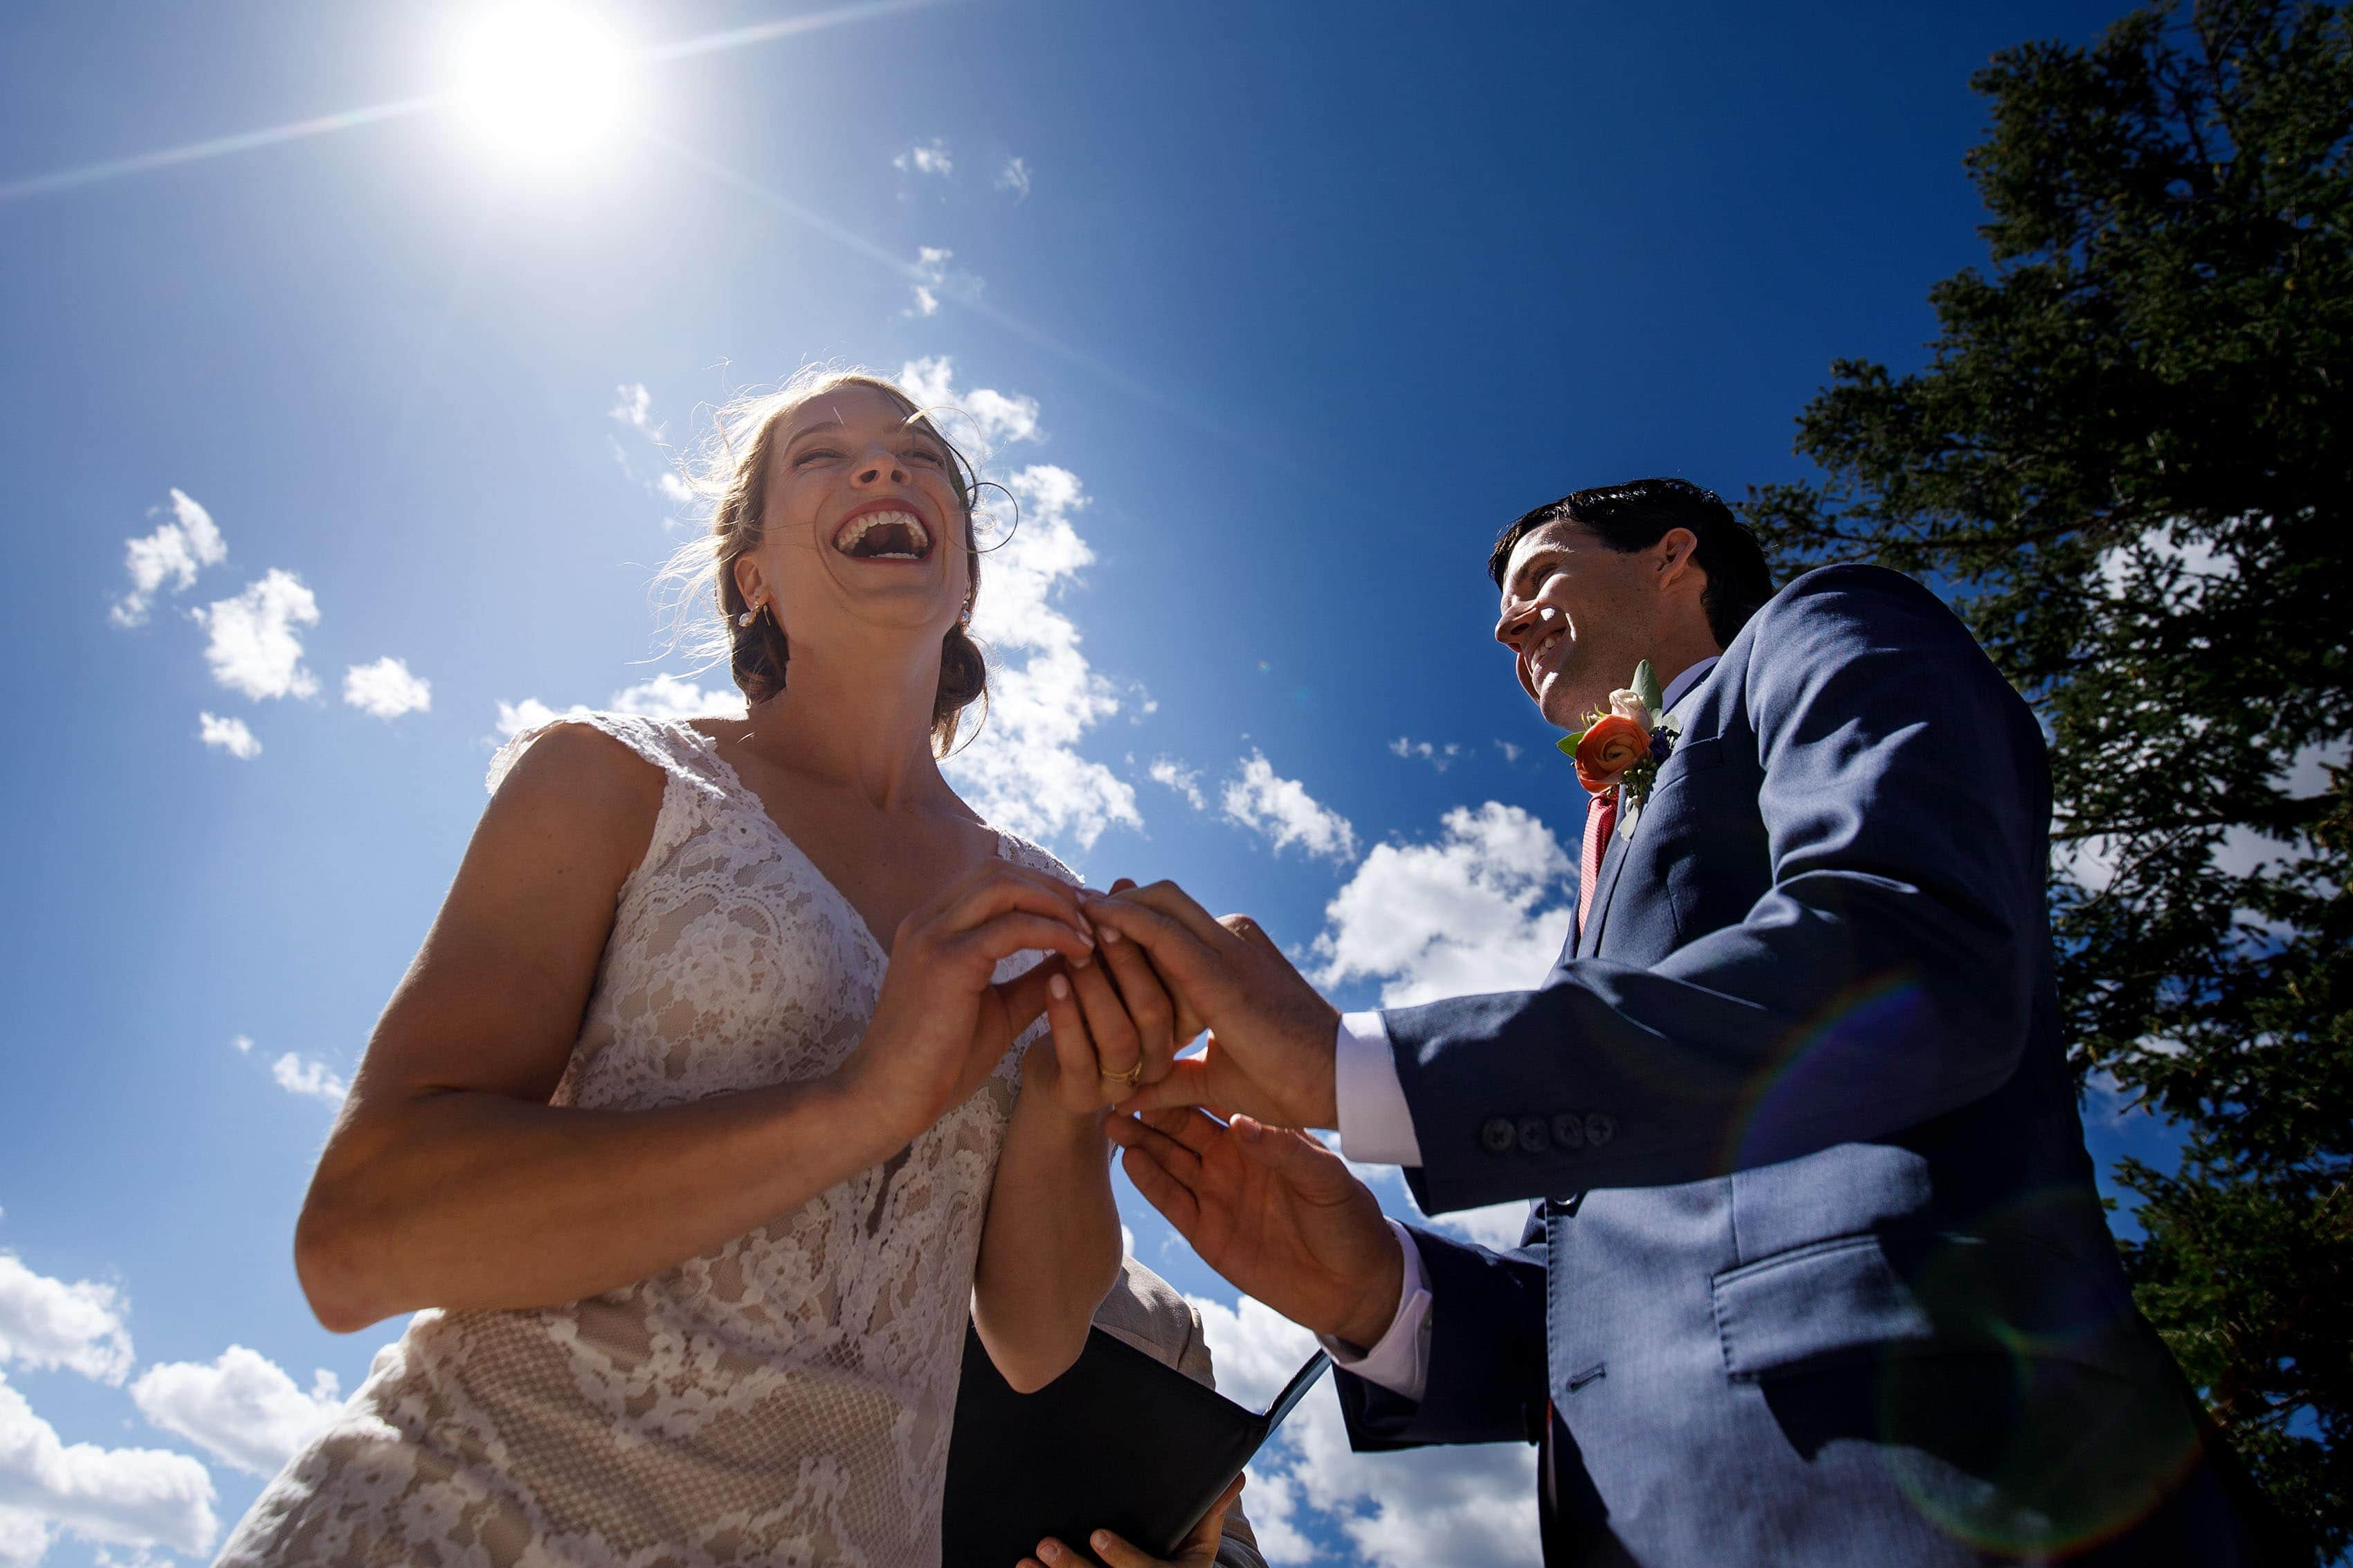 The bride laughs while putting on the groom's ring during their Sapphire Point wedding ceremony